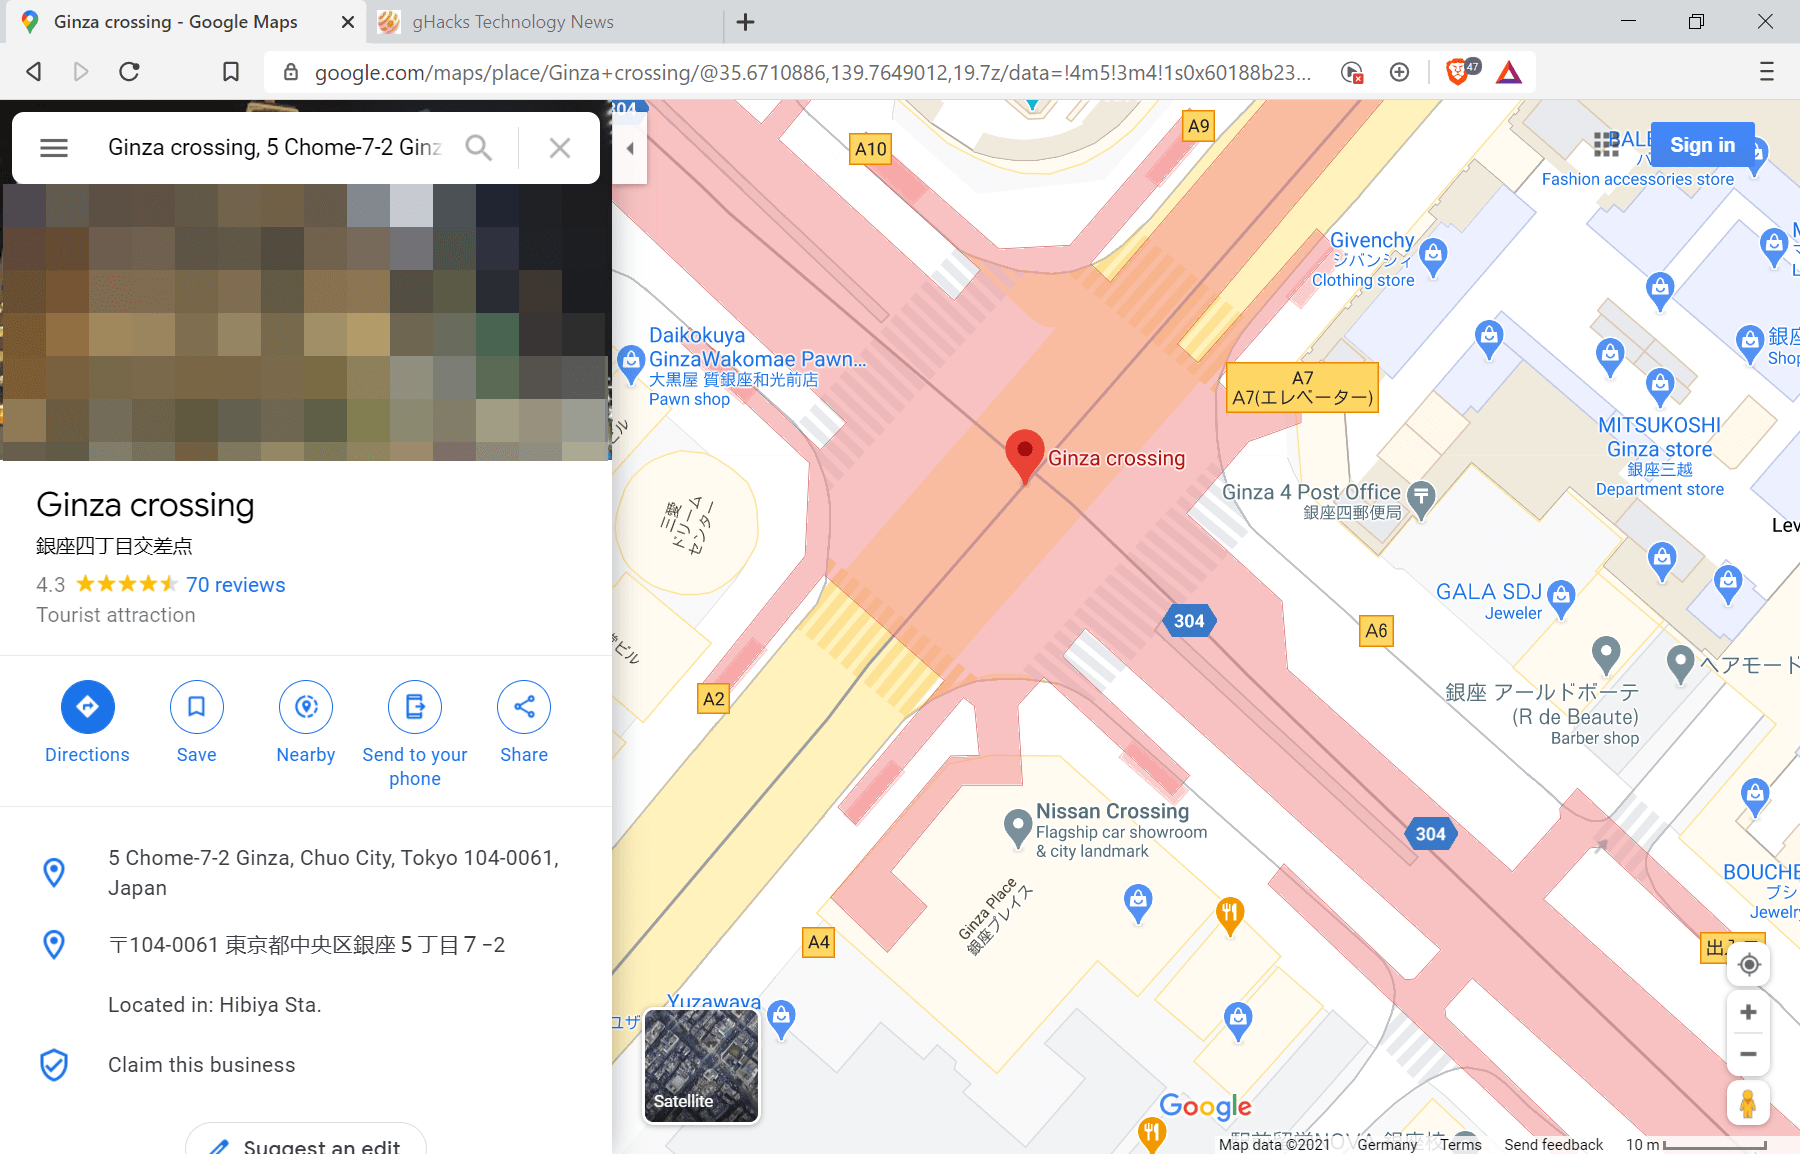 Google is adding crosswalks and other details to Google Maps